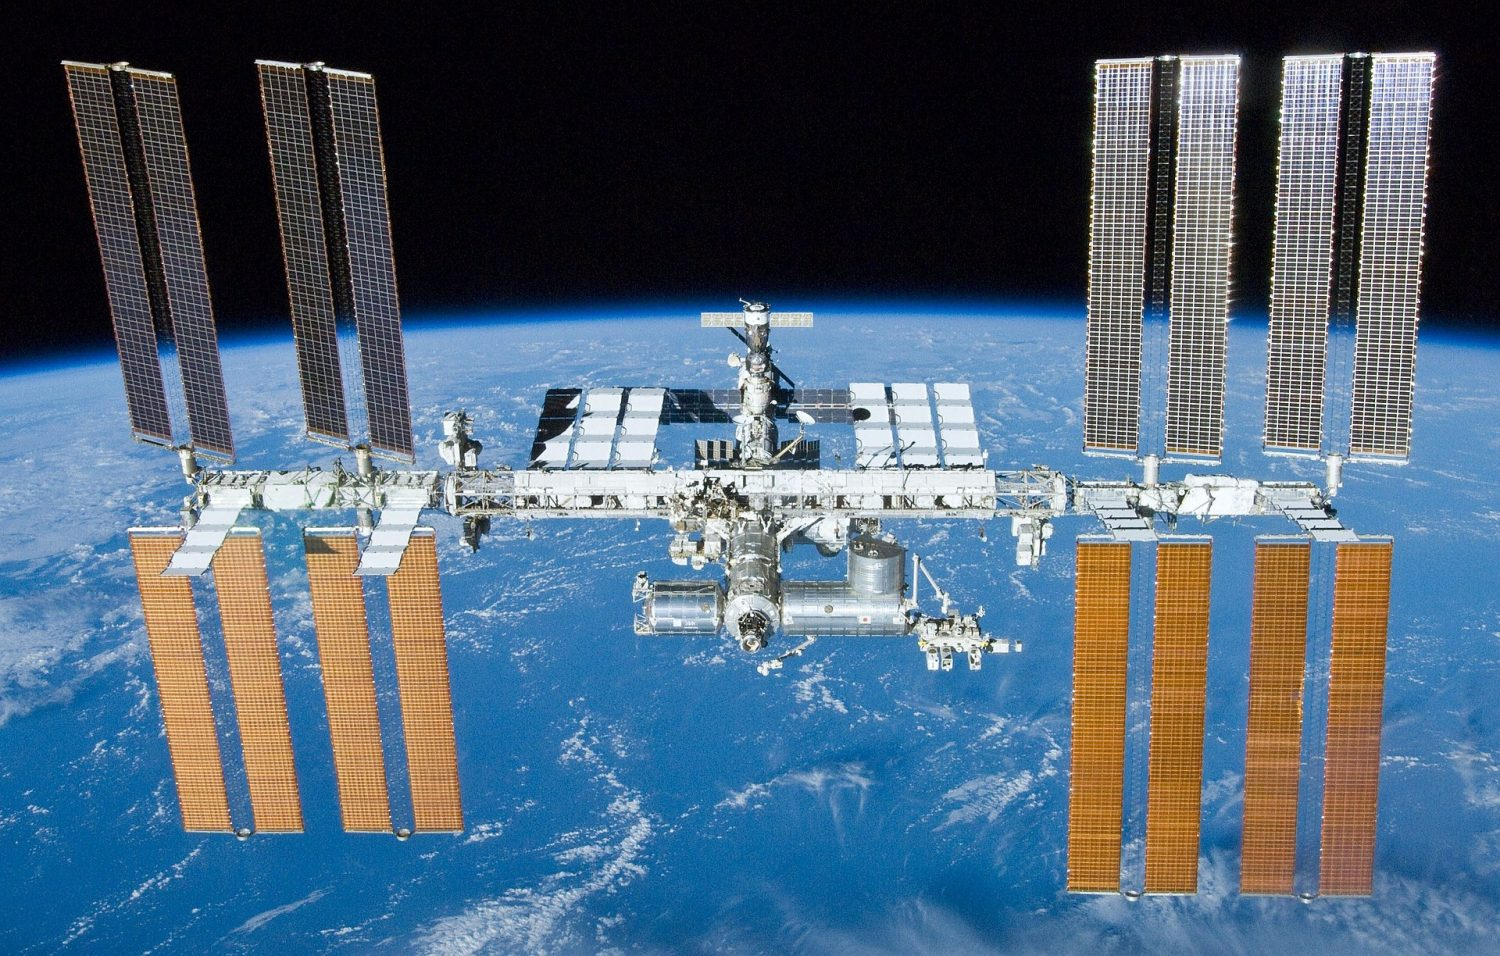 The International Space Station in earth orbit.